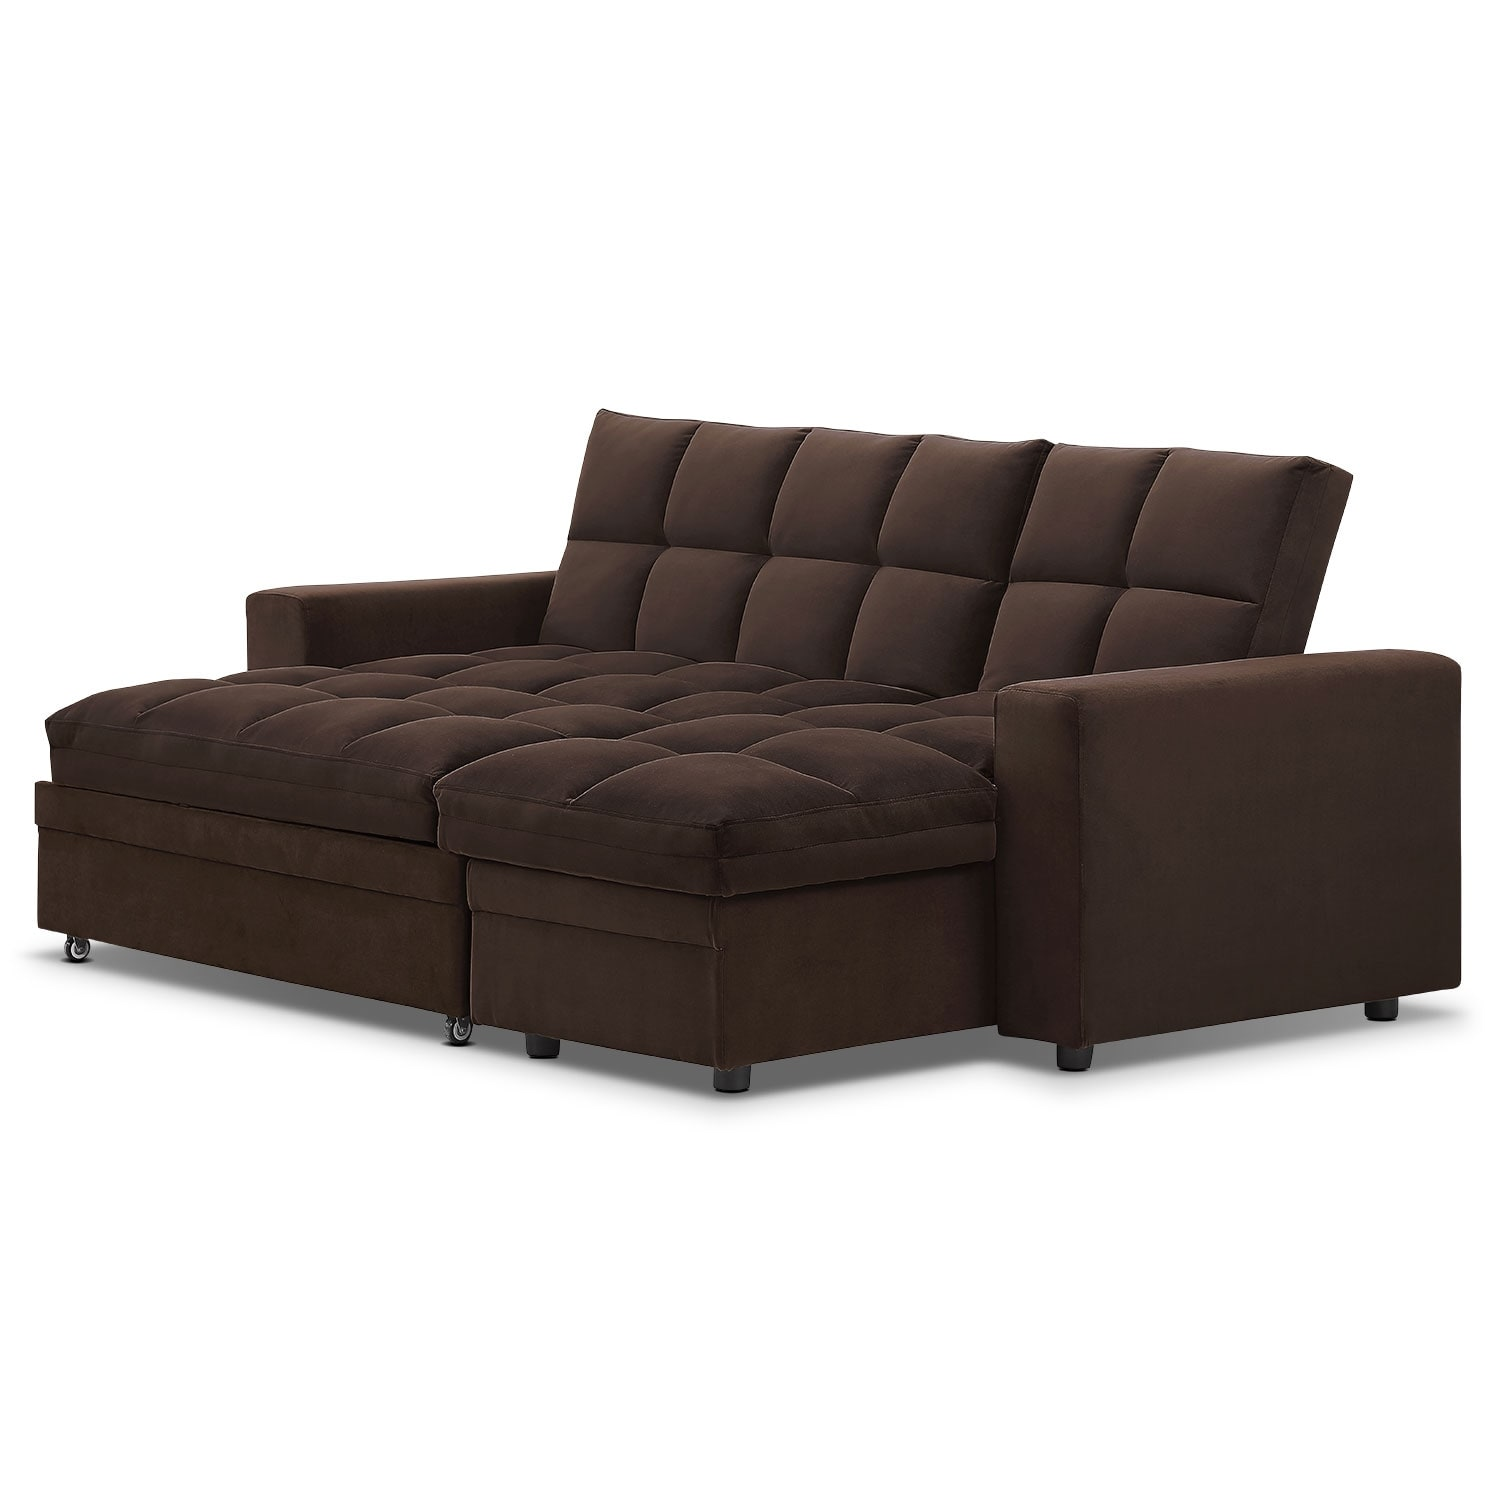 Metro 2 pc chaise sofa bed w storage value city furniture for Sofa bed 65 inches